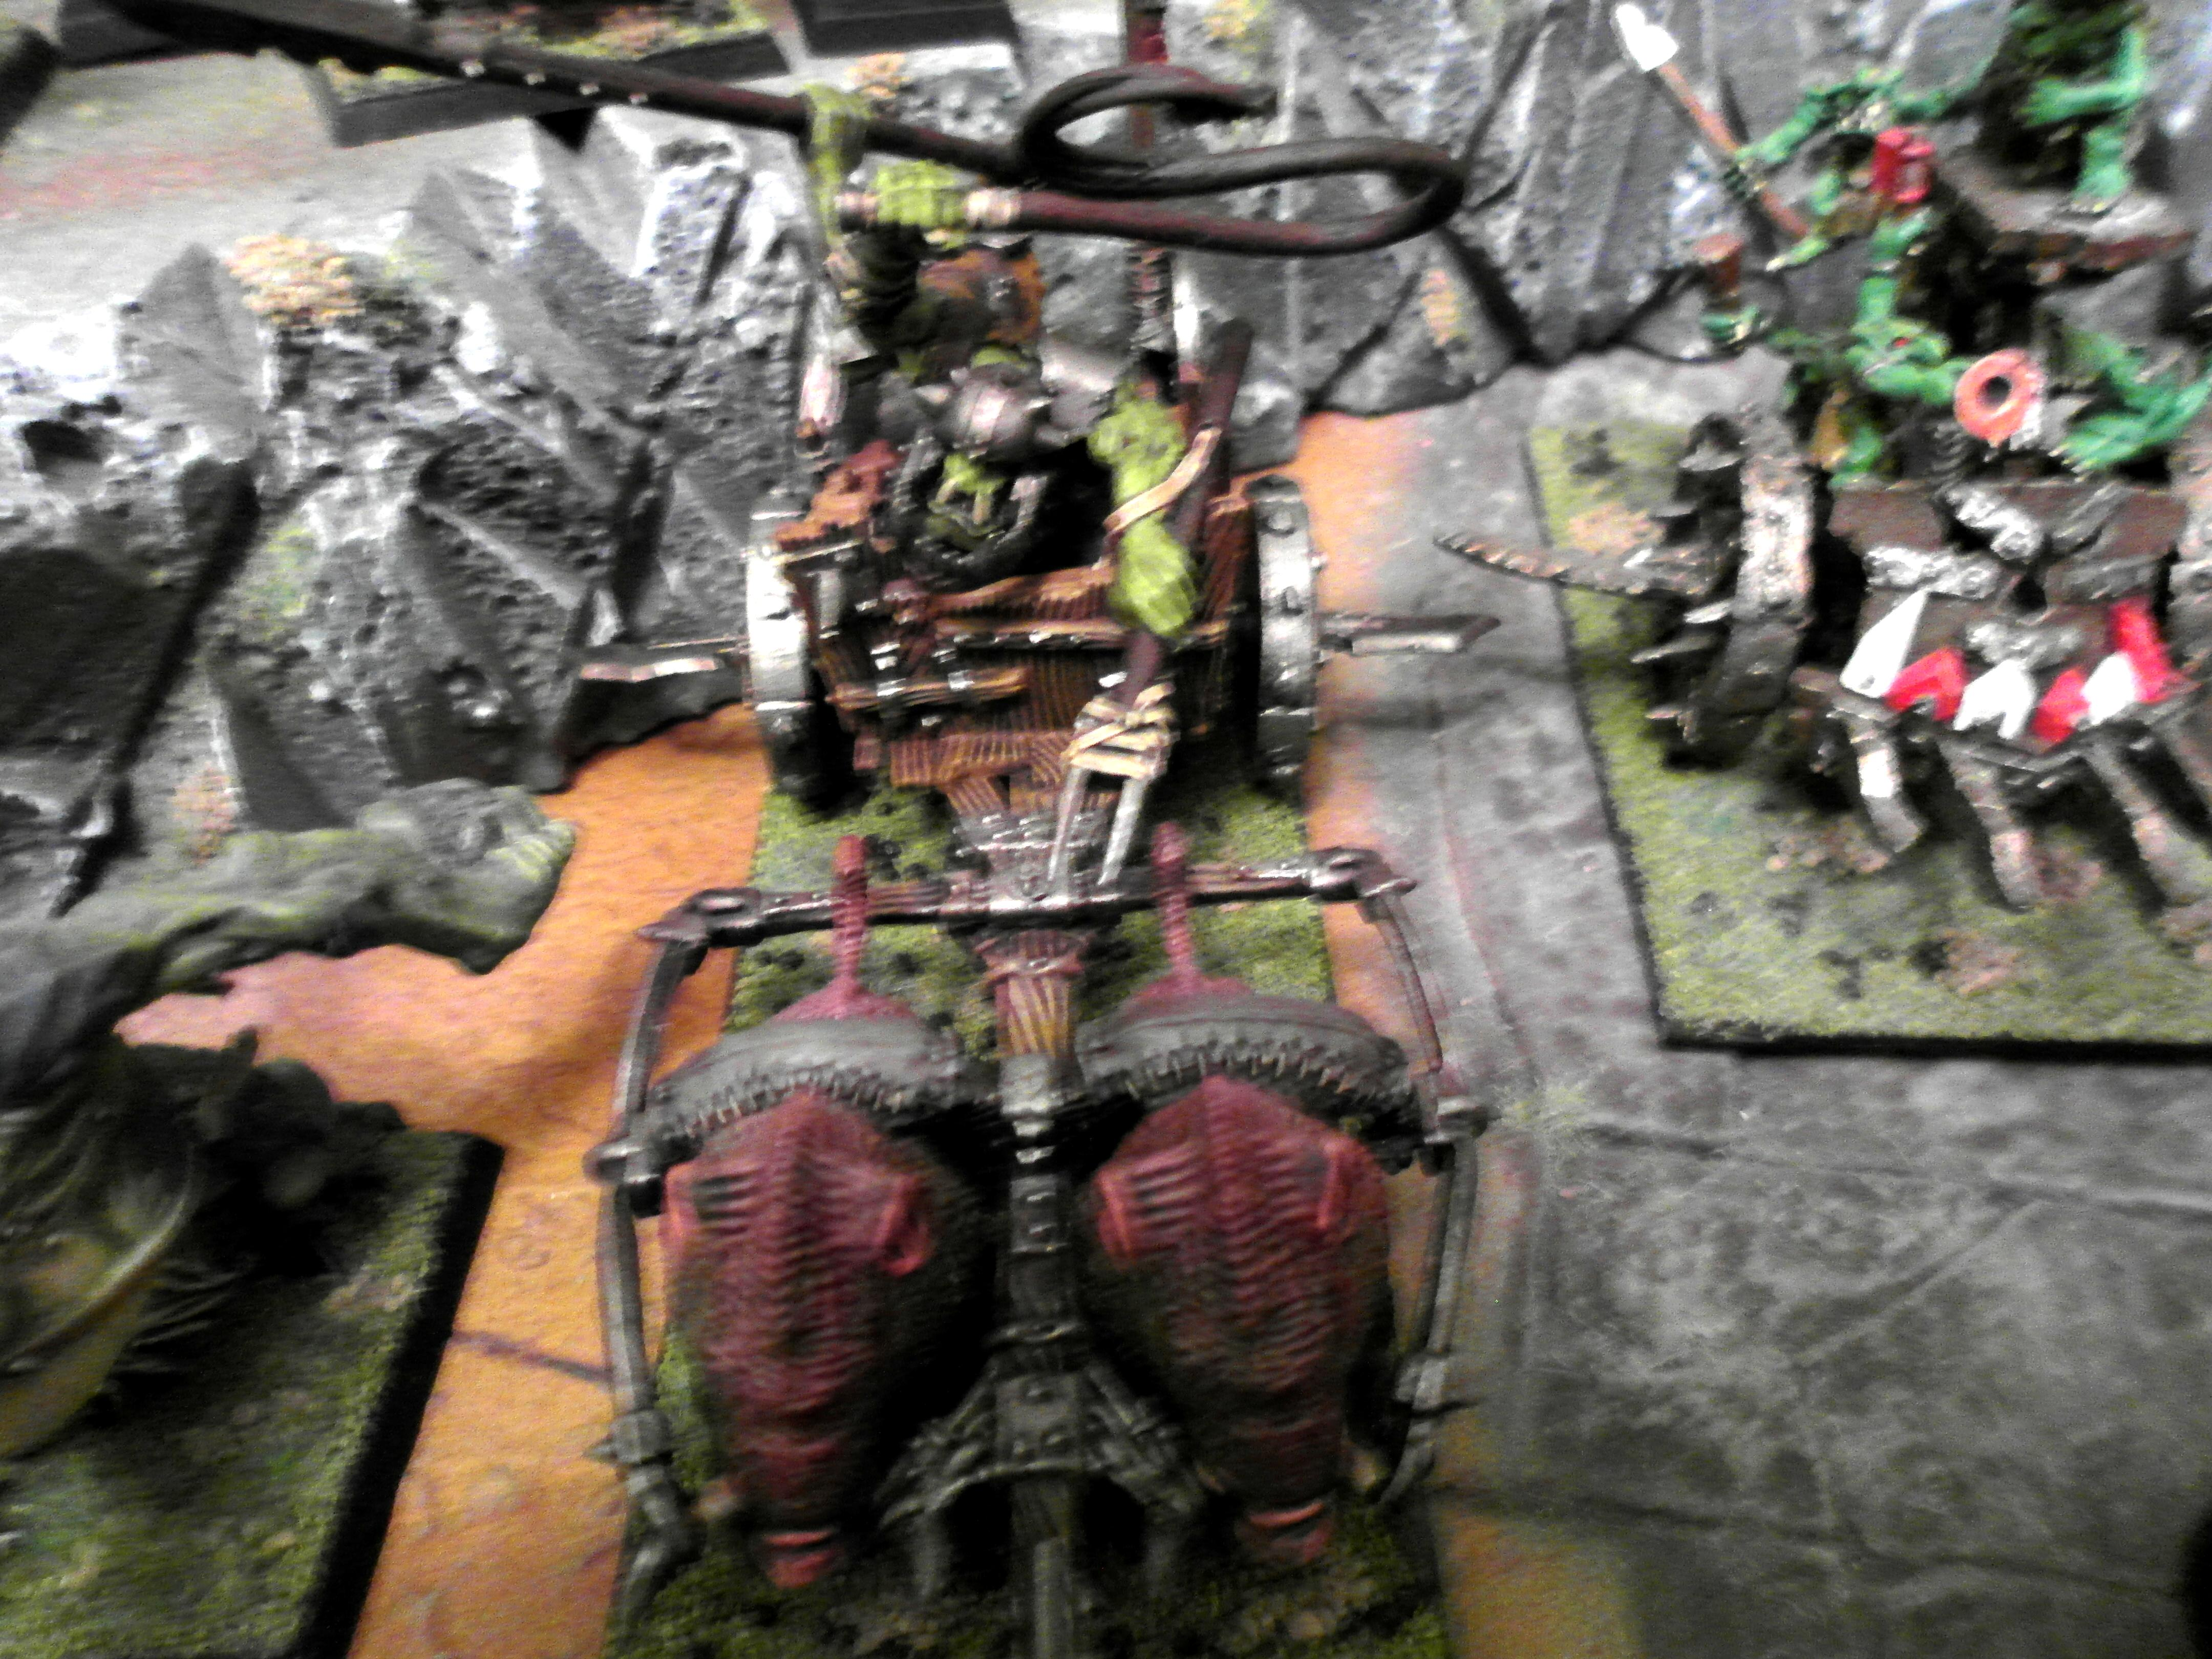 Age Of Sigmar, Boars, Chariot, Orcs And Goblins, Warhammer Fantasy